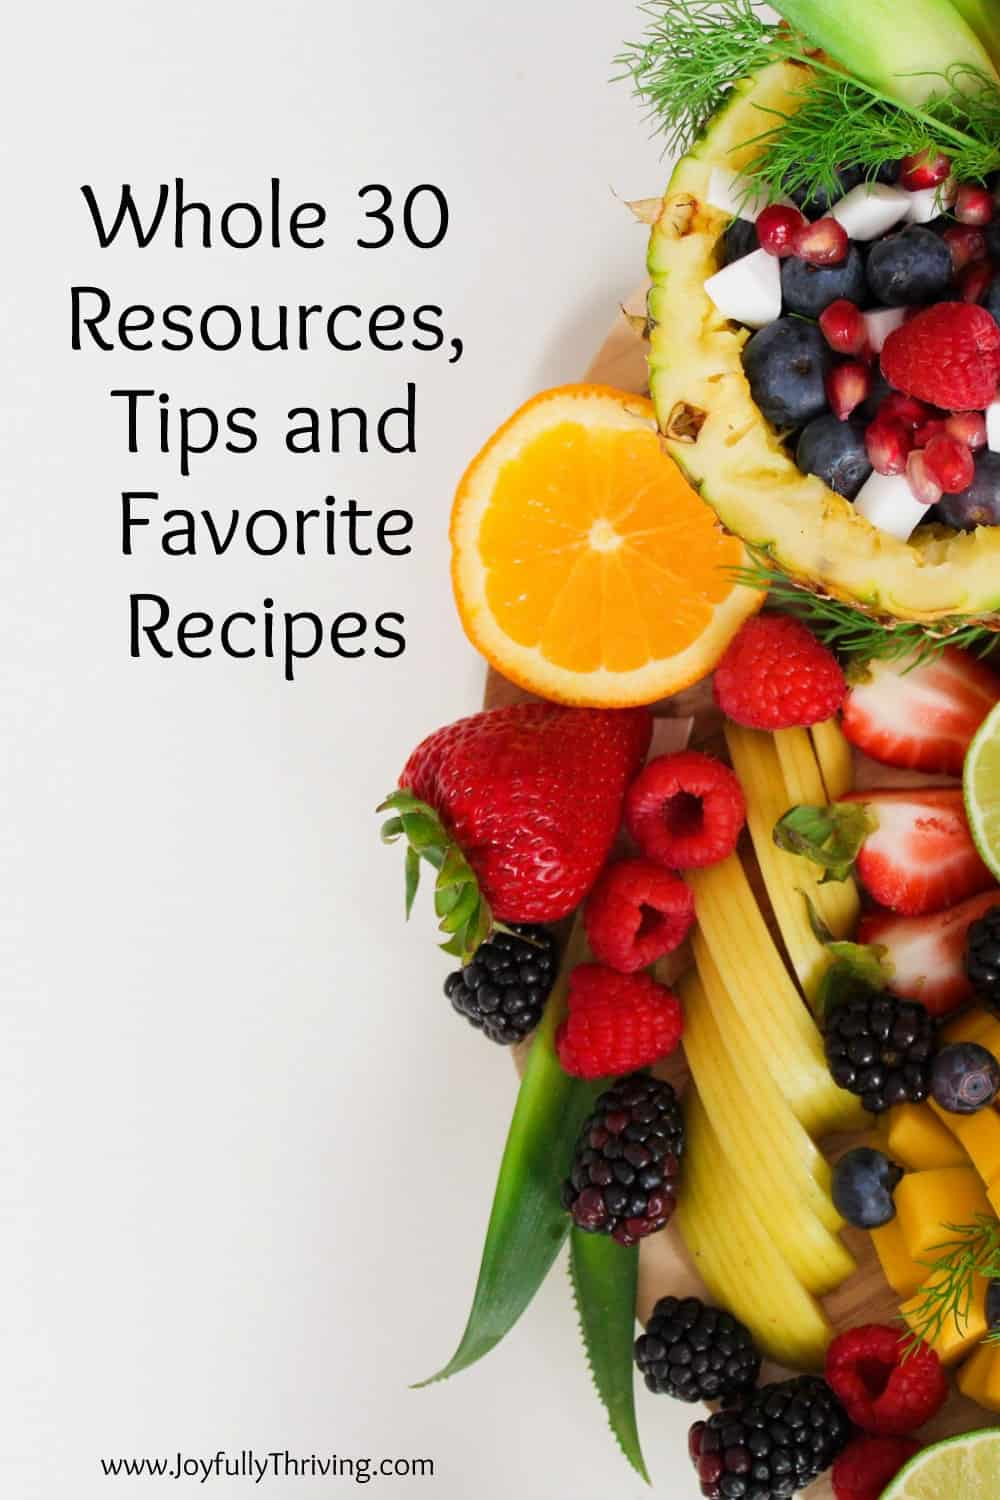 Thinking of attempting a Whole 30? Here are some great Whole 30 resources, tips and favorite recipes from a busy mom of little ones who did the challenge too! #whole30